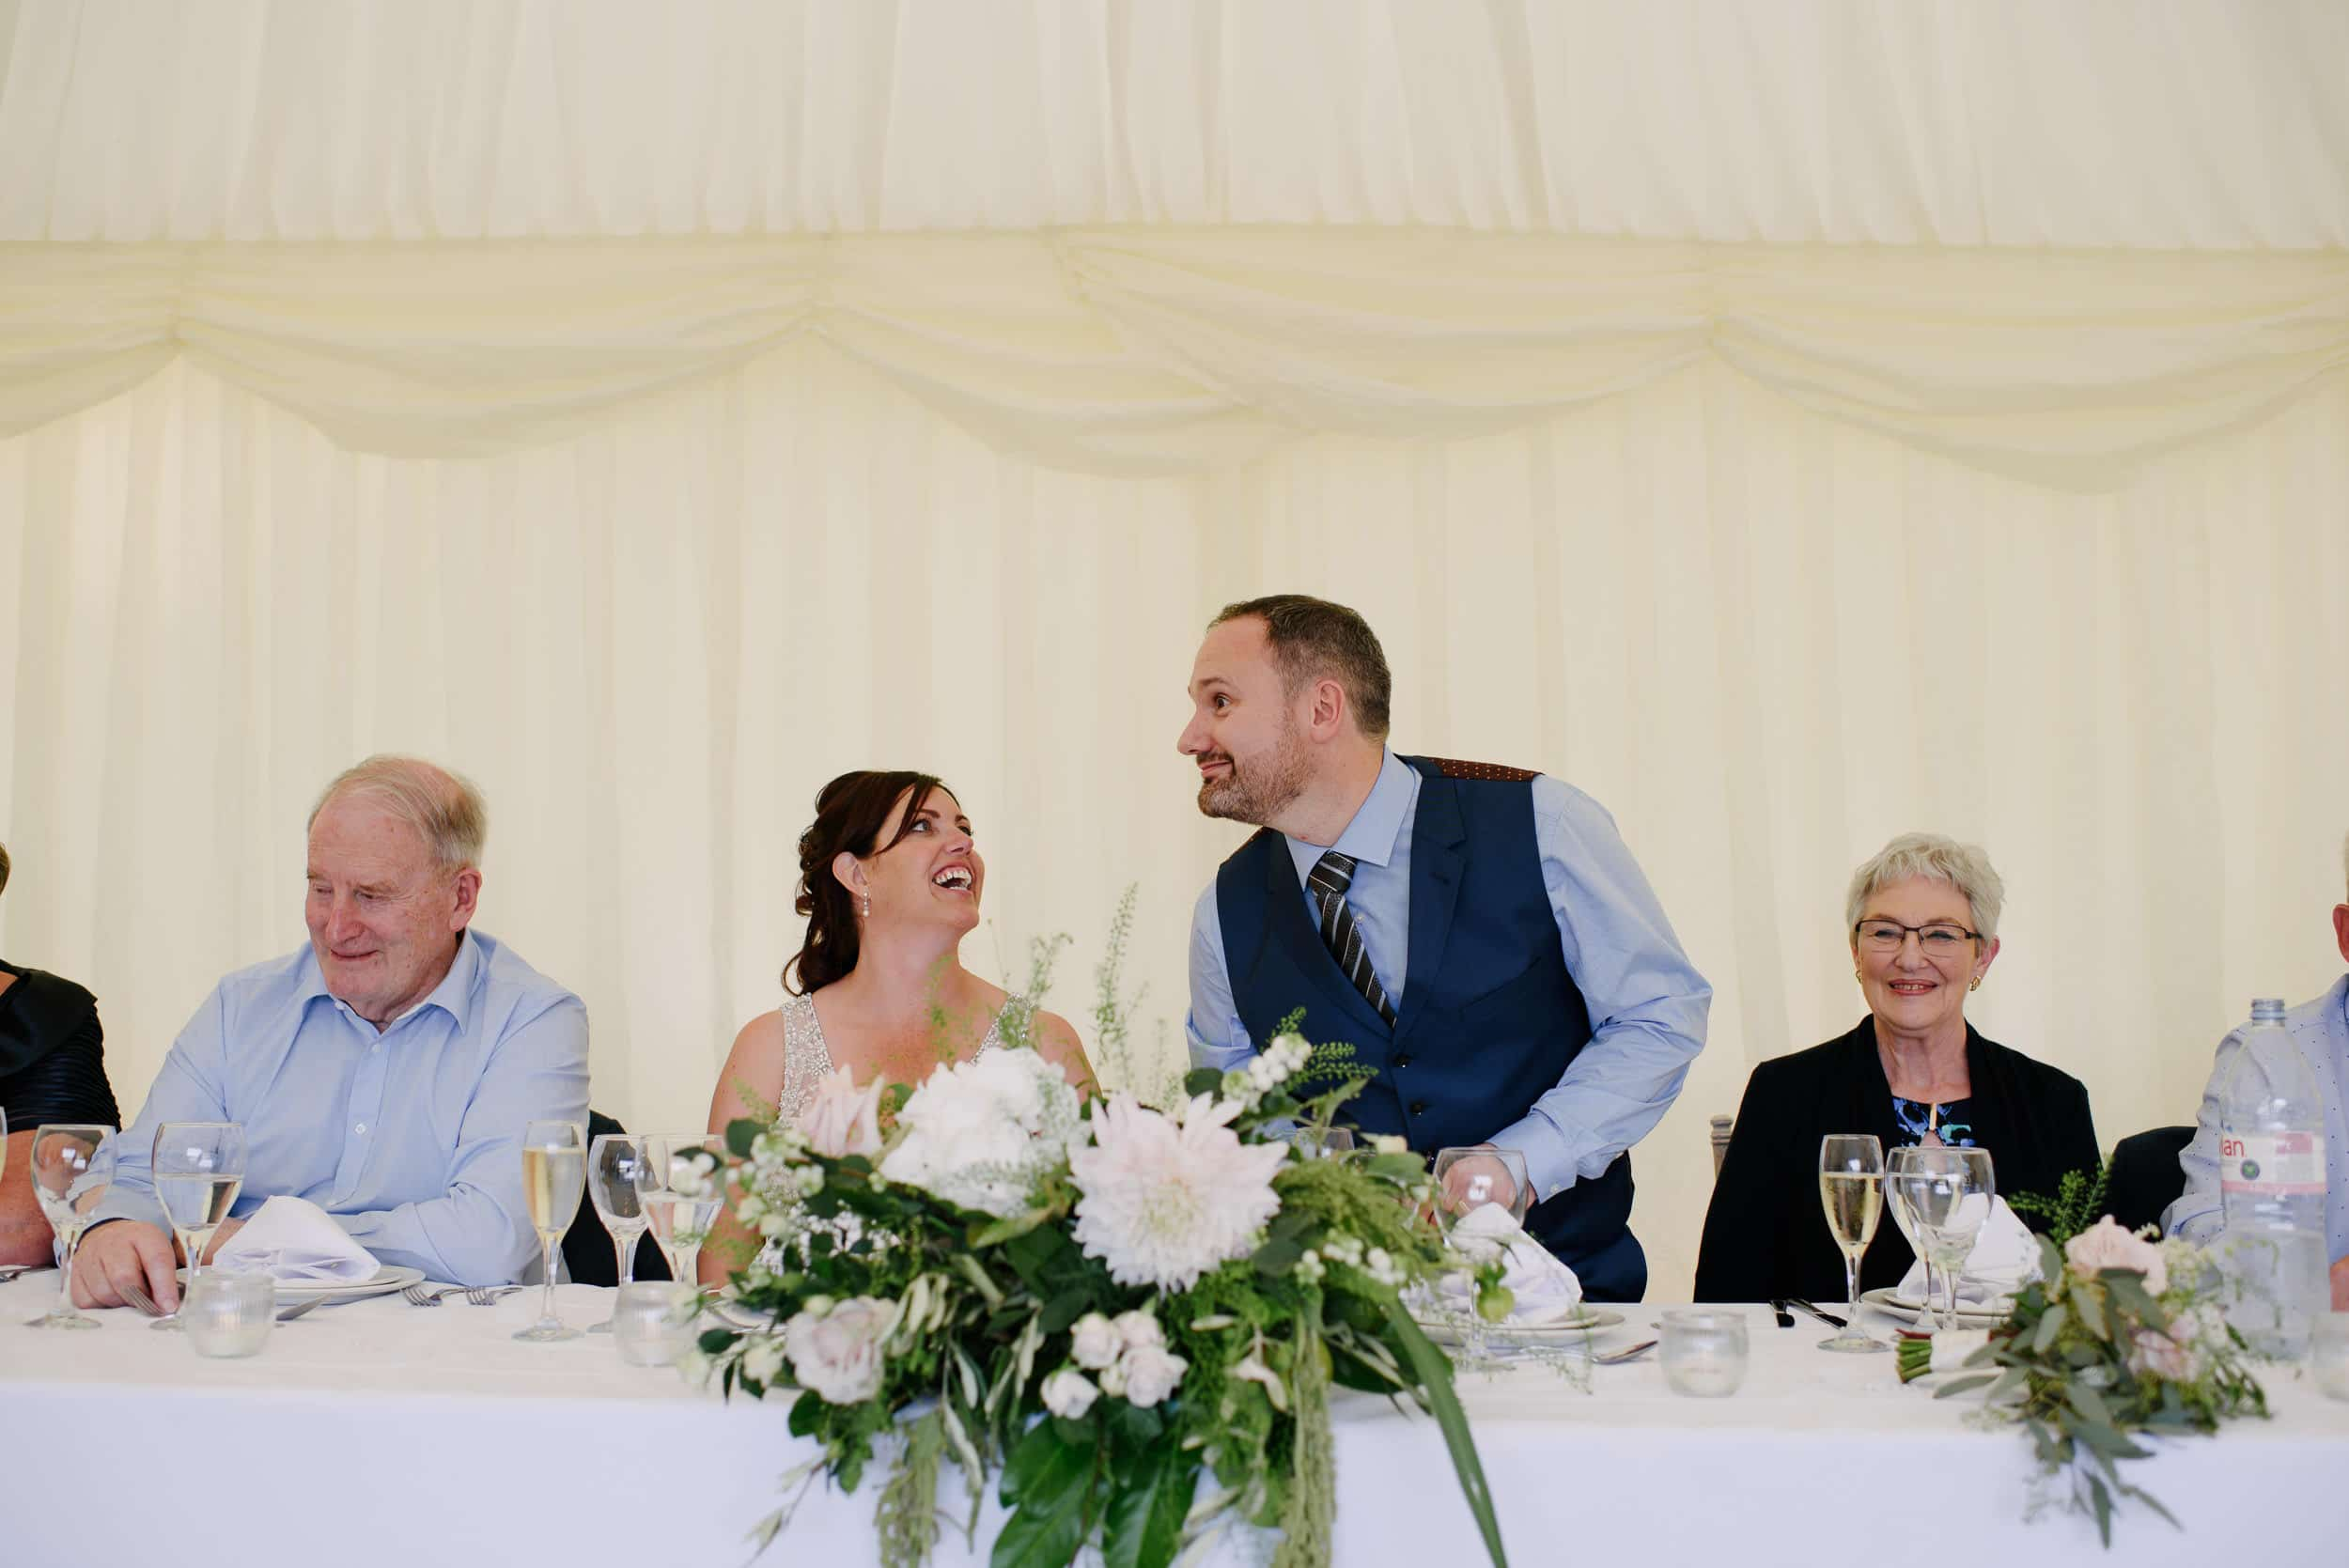 Suzy & Mike - Blickling Hall Wedding 33